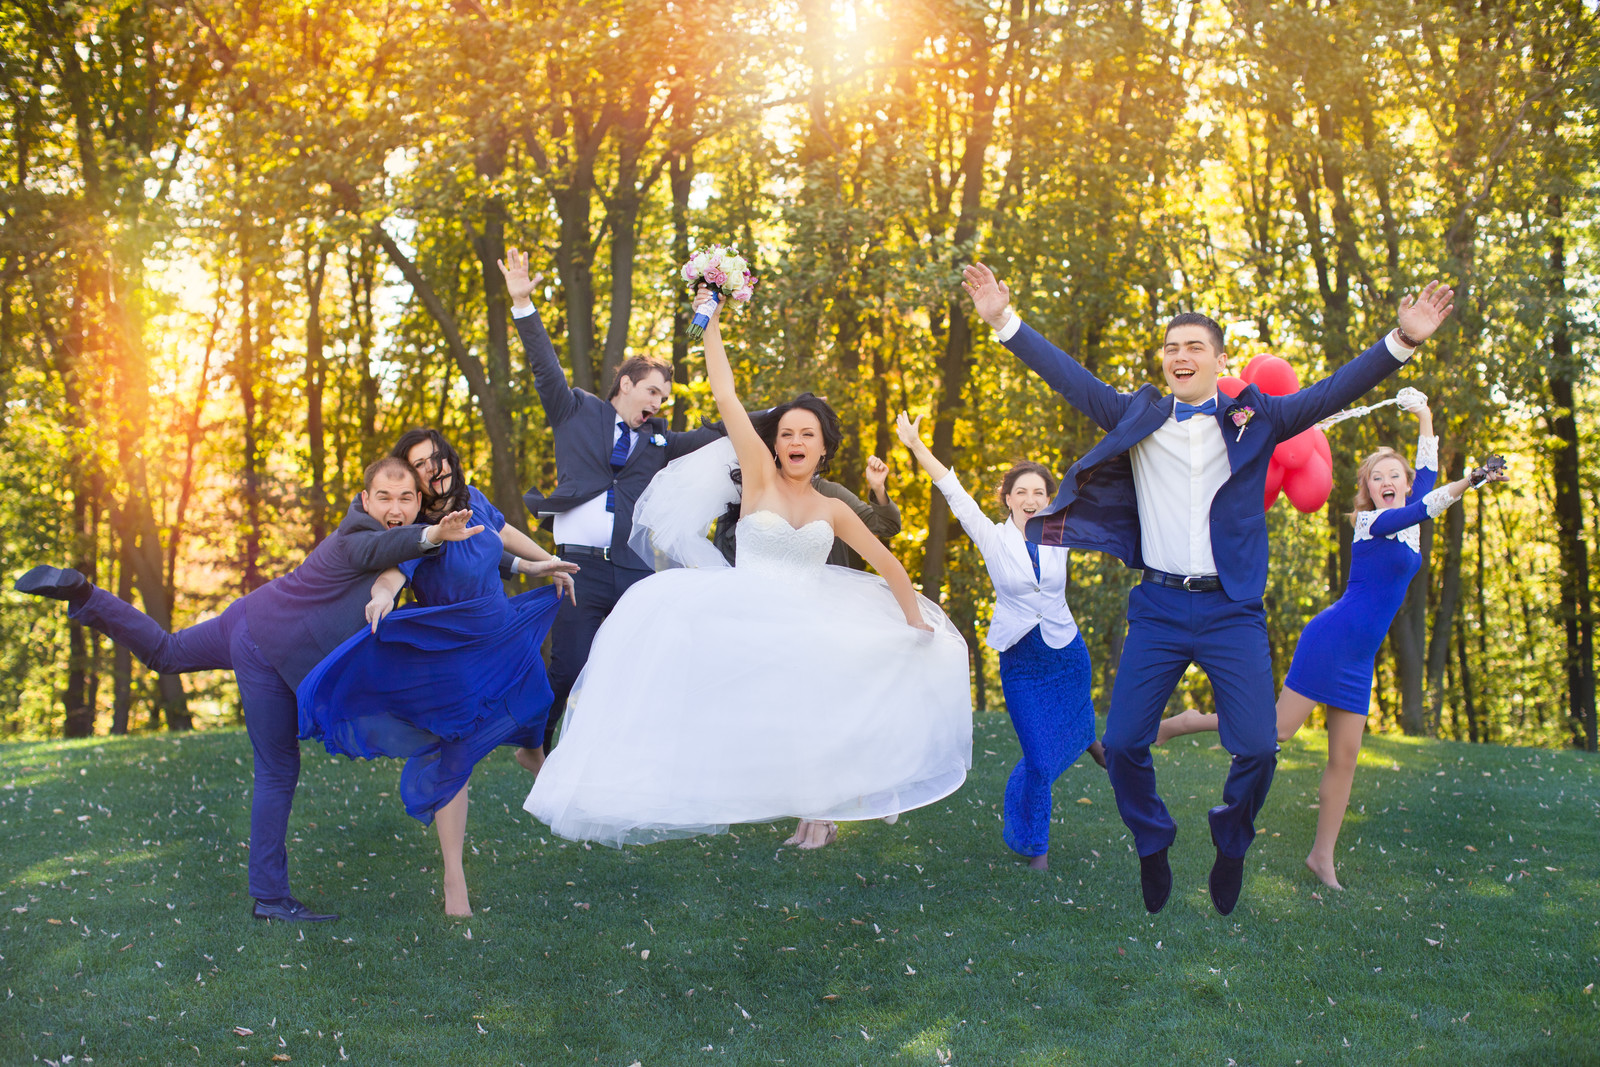 jumping for joy in their wedding photo